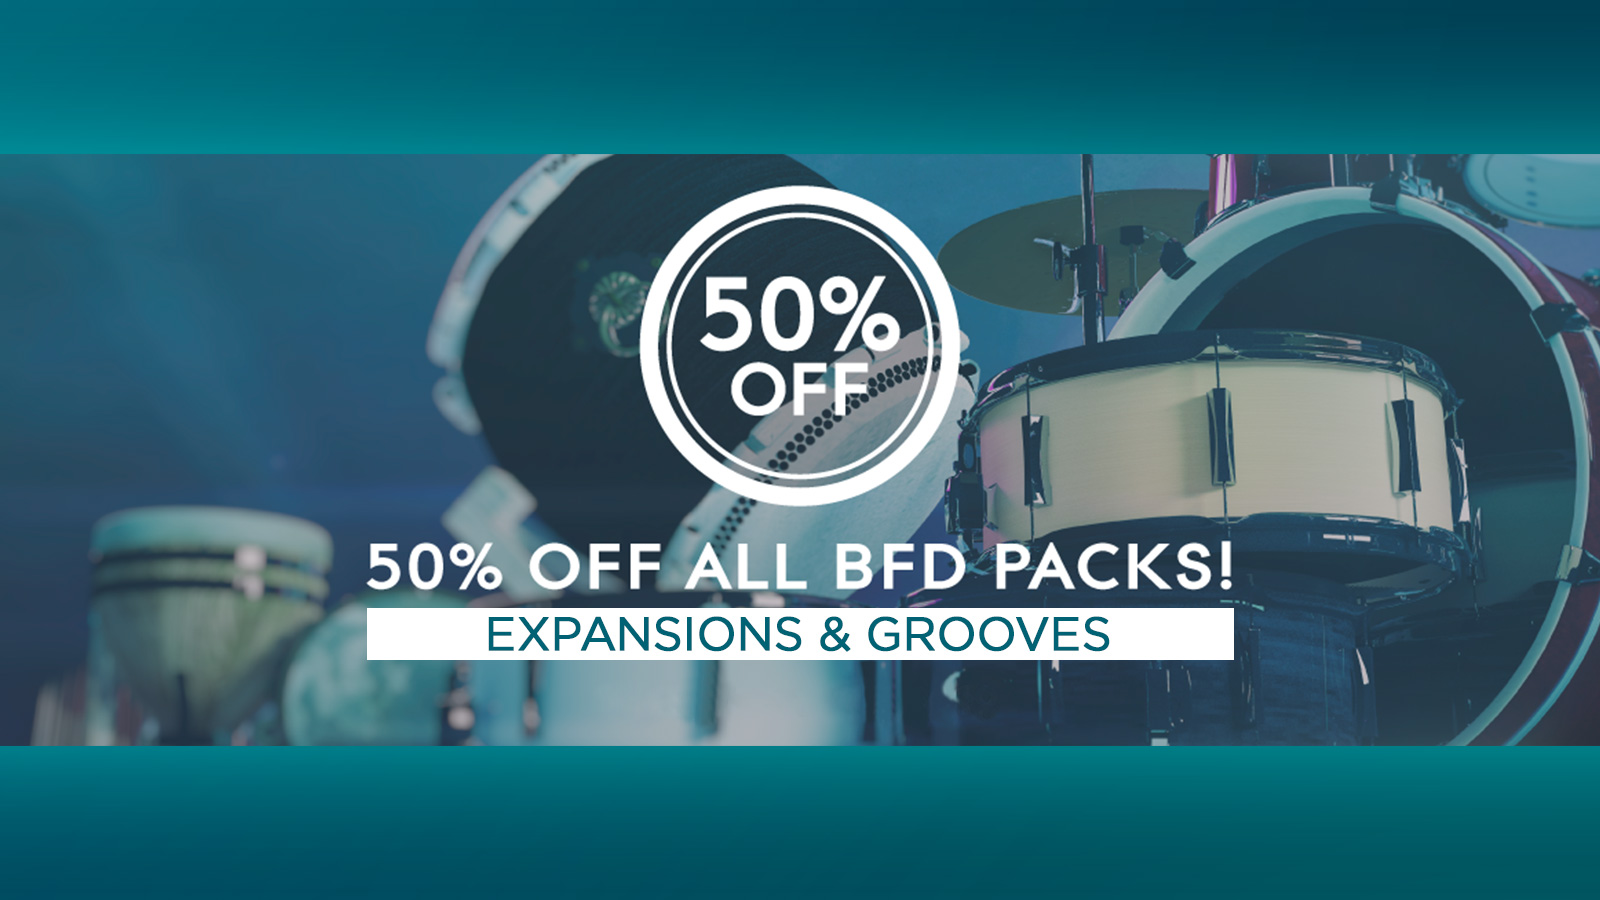 BFD Expansions & Grooves All 50% OFF Sale!